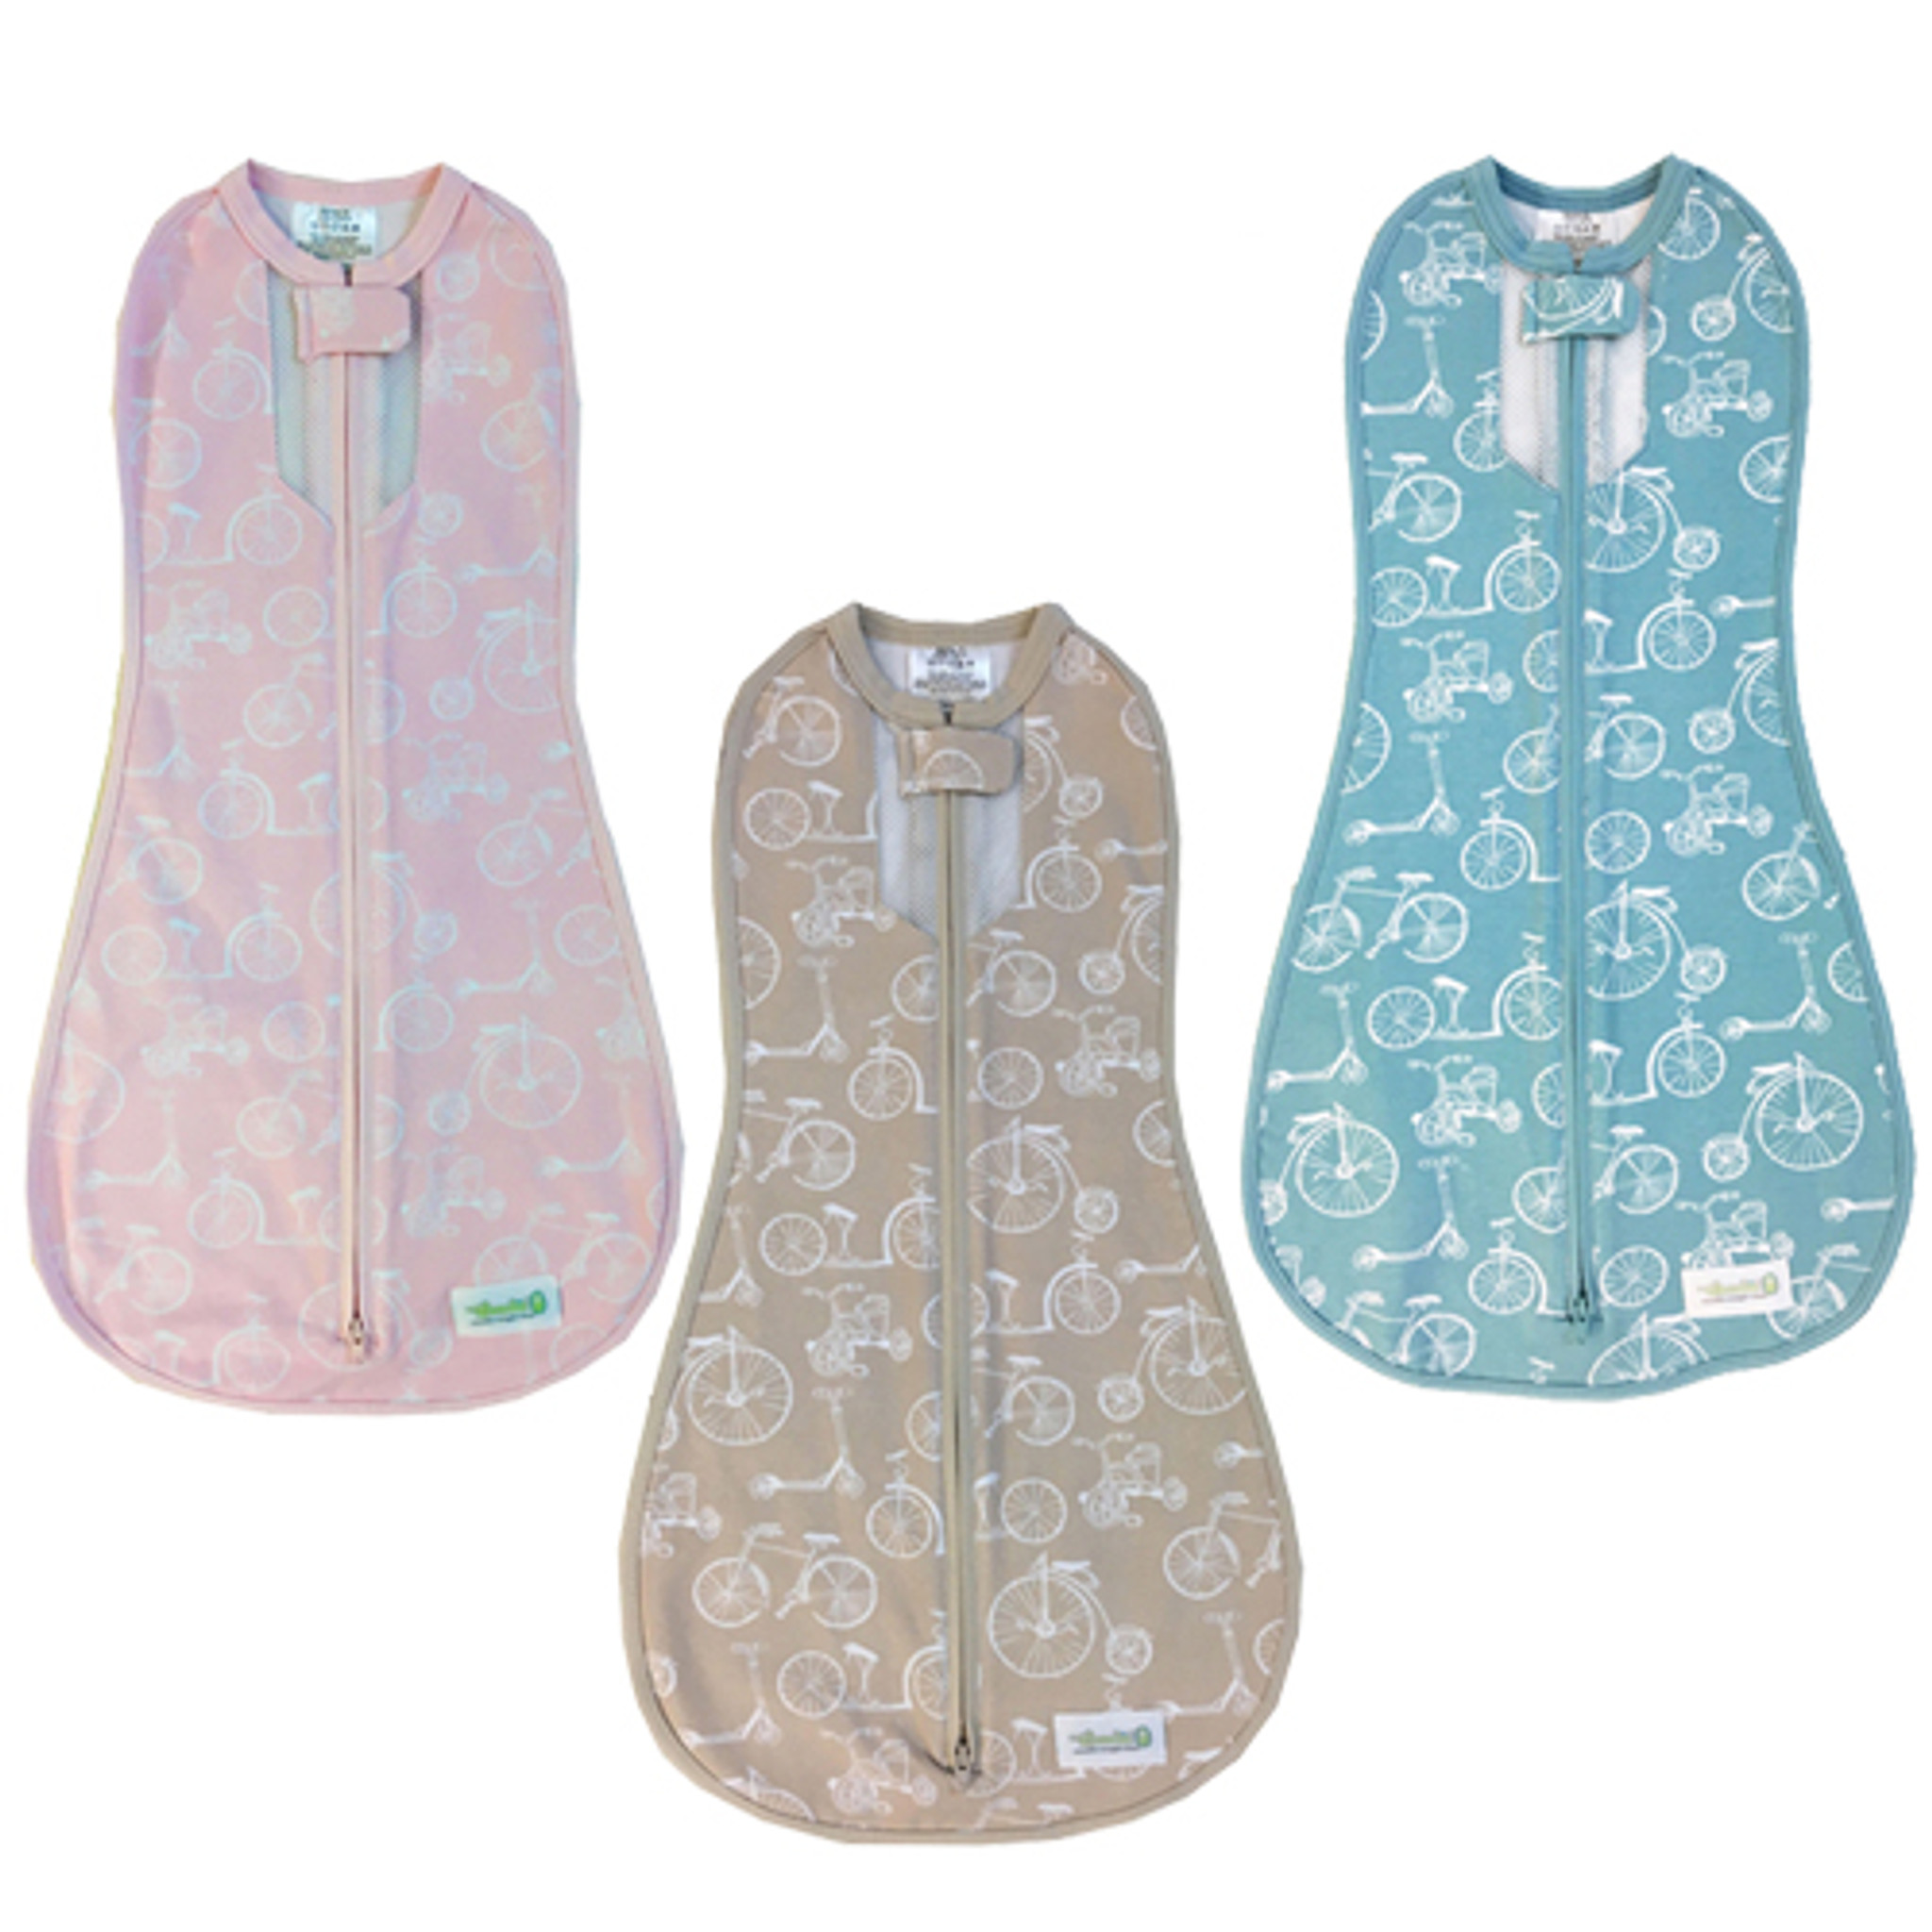 a43a094b98 Woombie Fun Bicycles Baby Swaddle